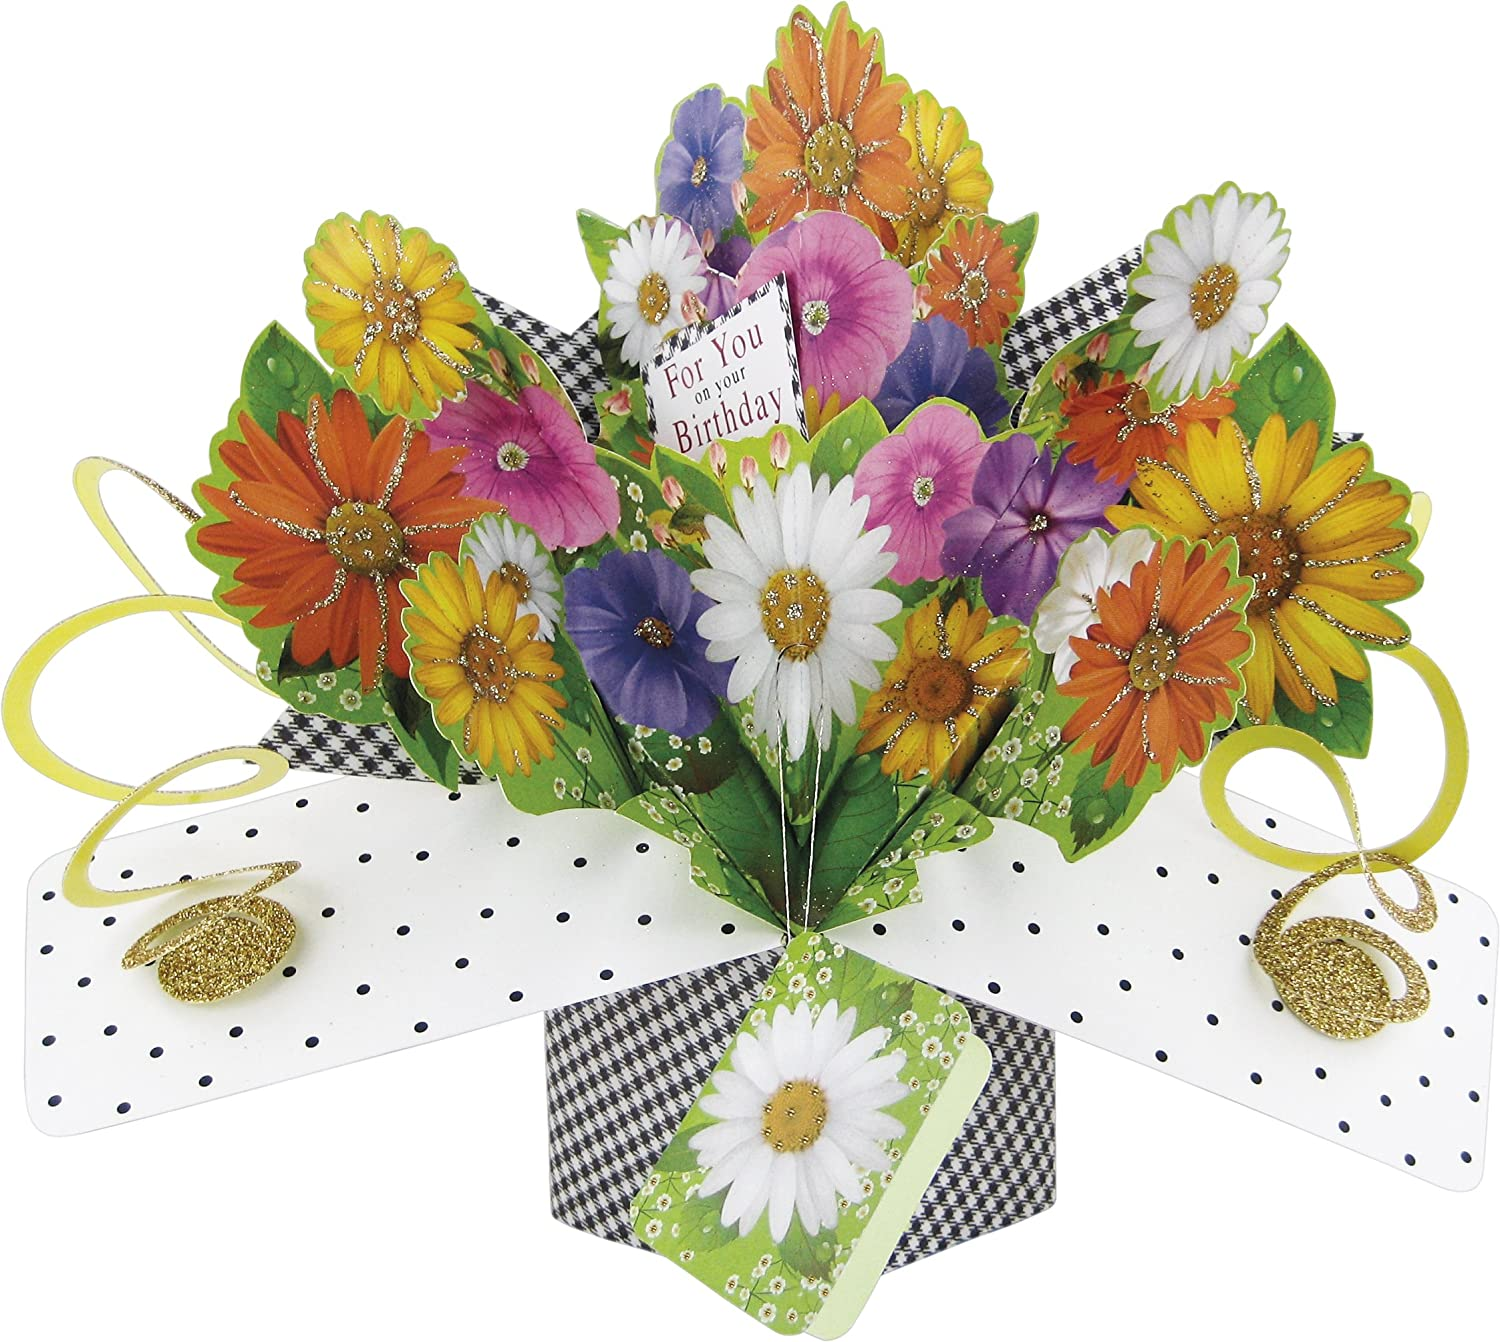 Amazon second nature pop ups for you on your birthday bouquet amazon second nature pop ups for you on your birthday bouquet pop up card office products izmirmasajfo